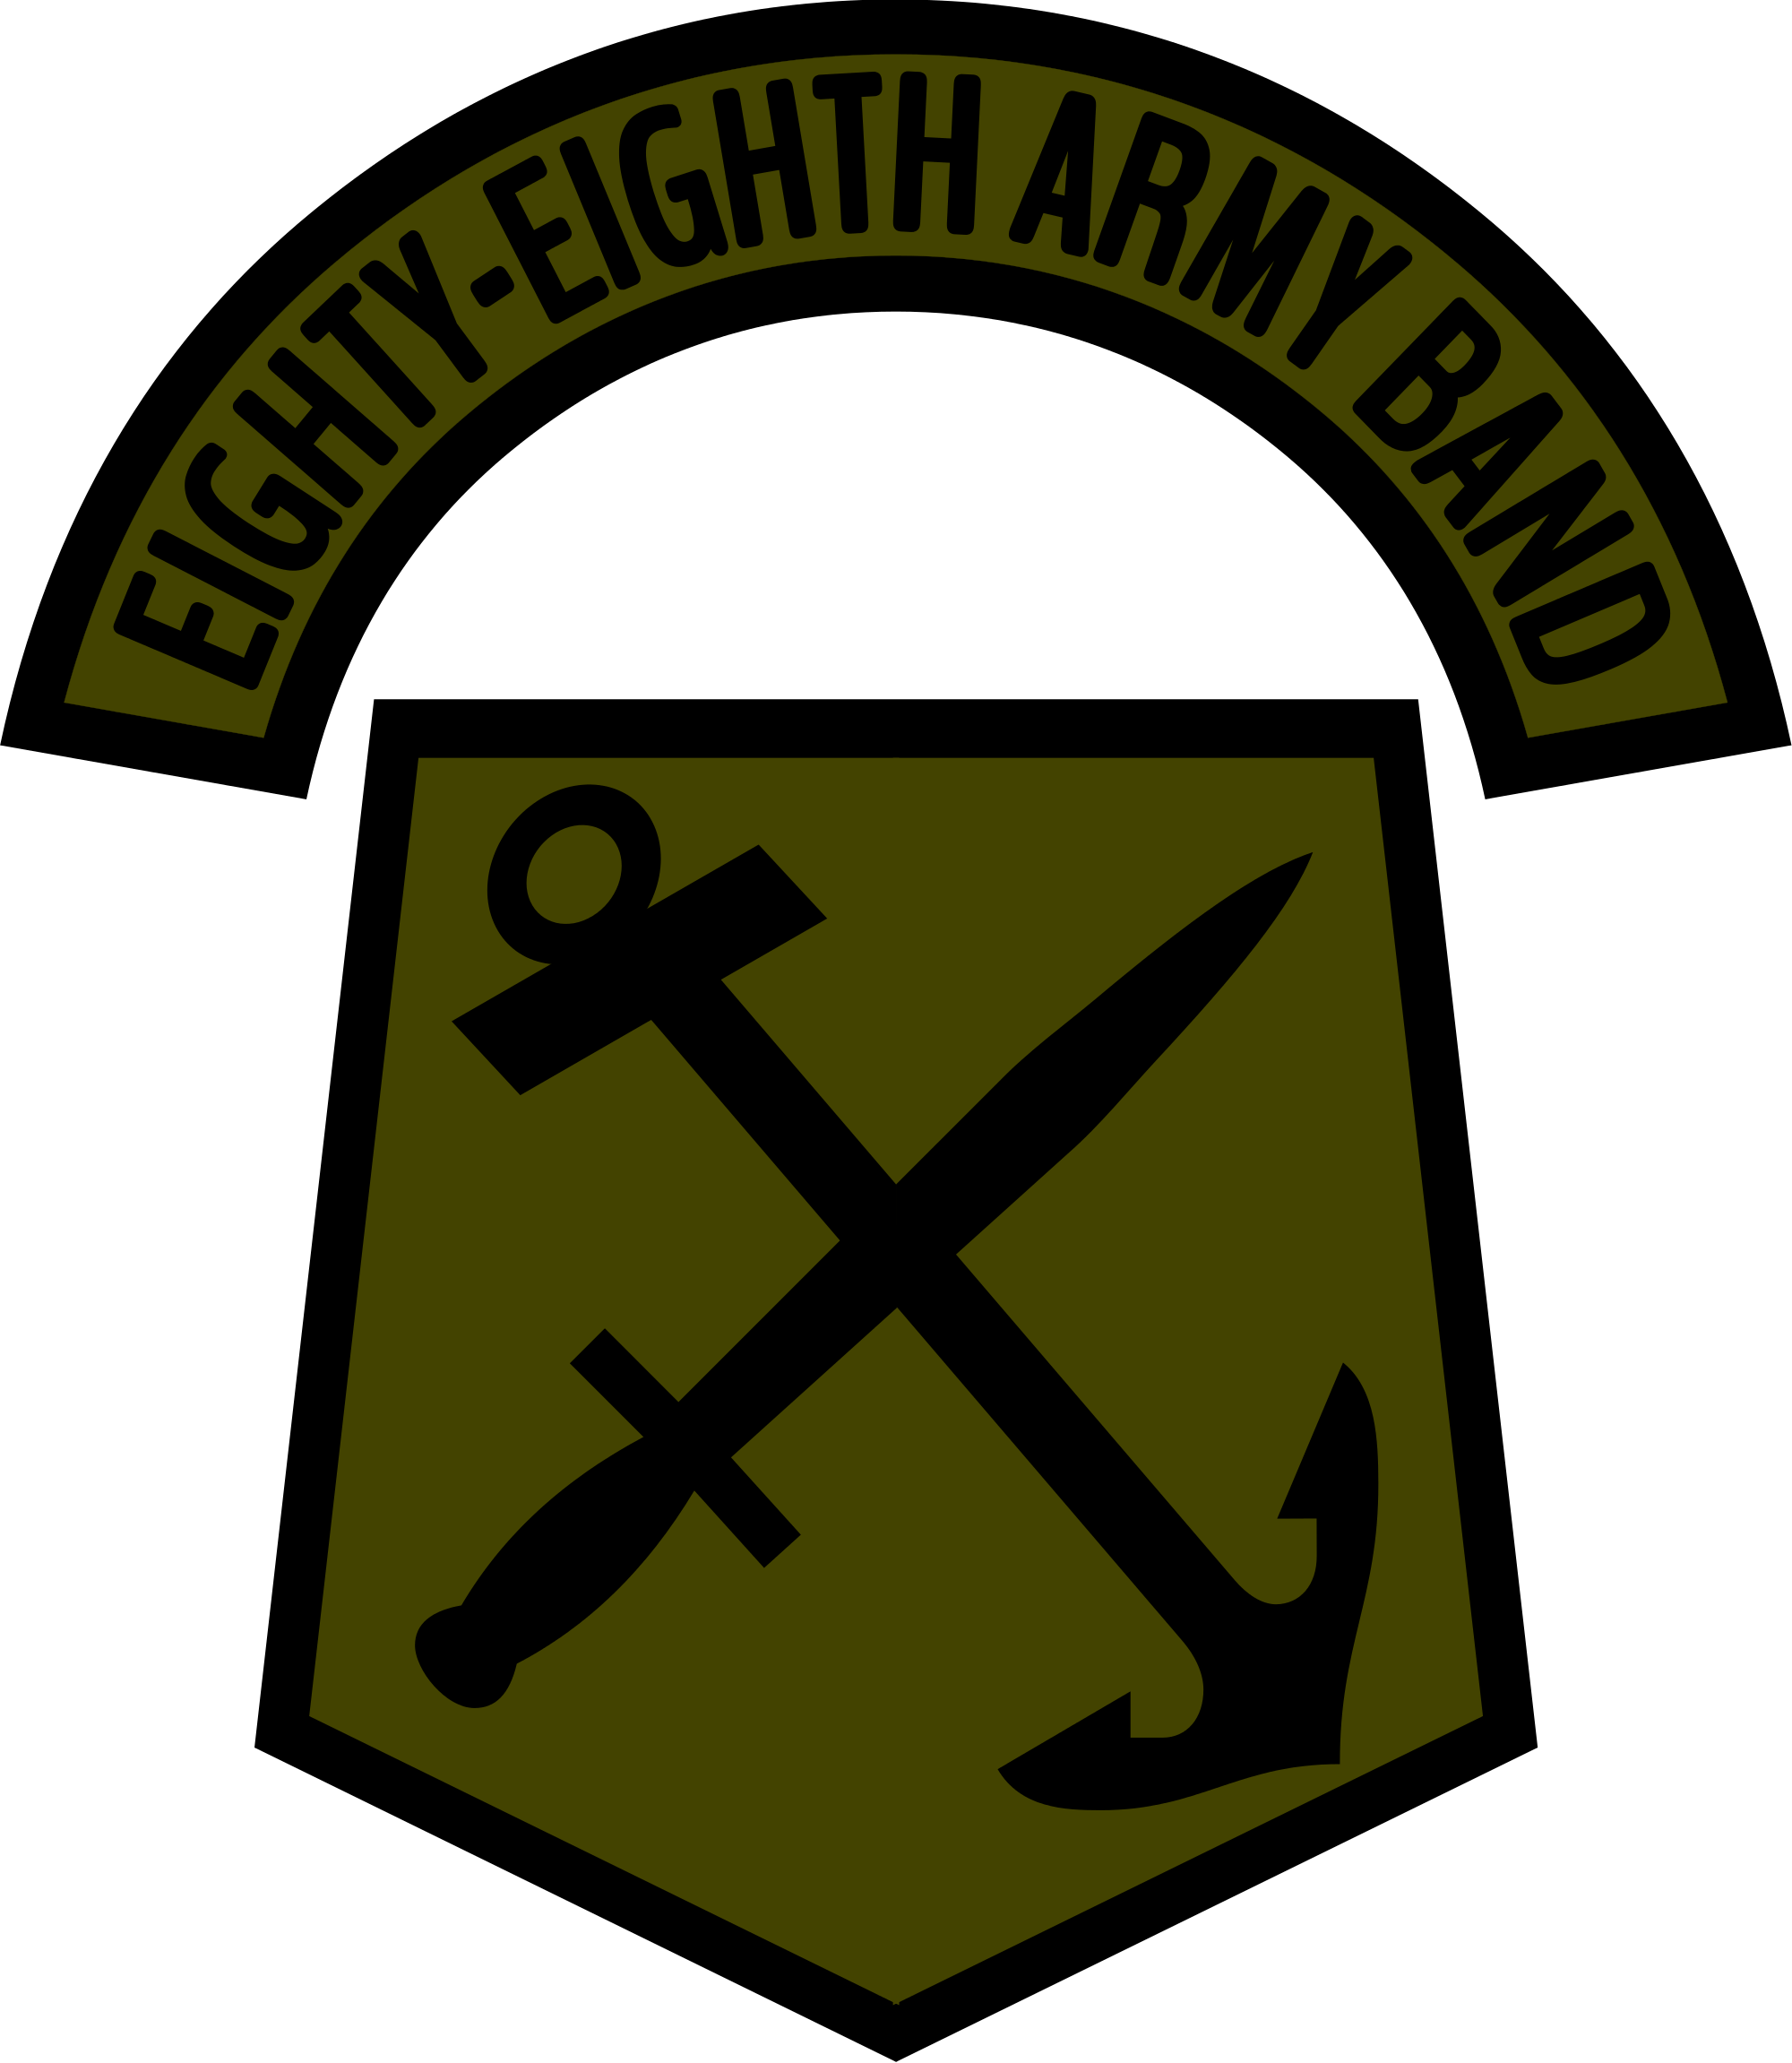 Woodland clipart svg. File us army eighty